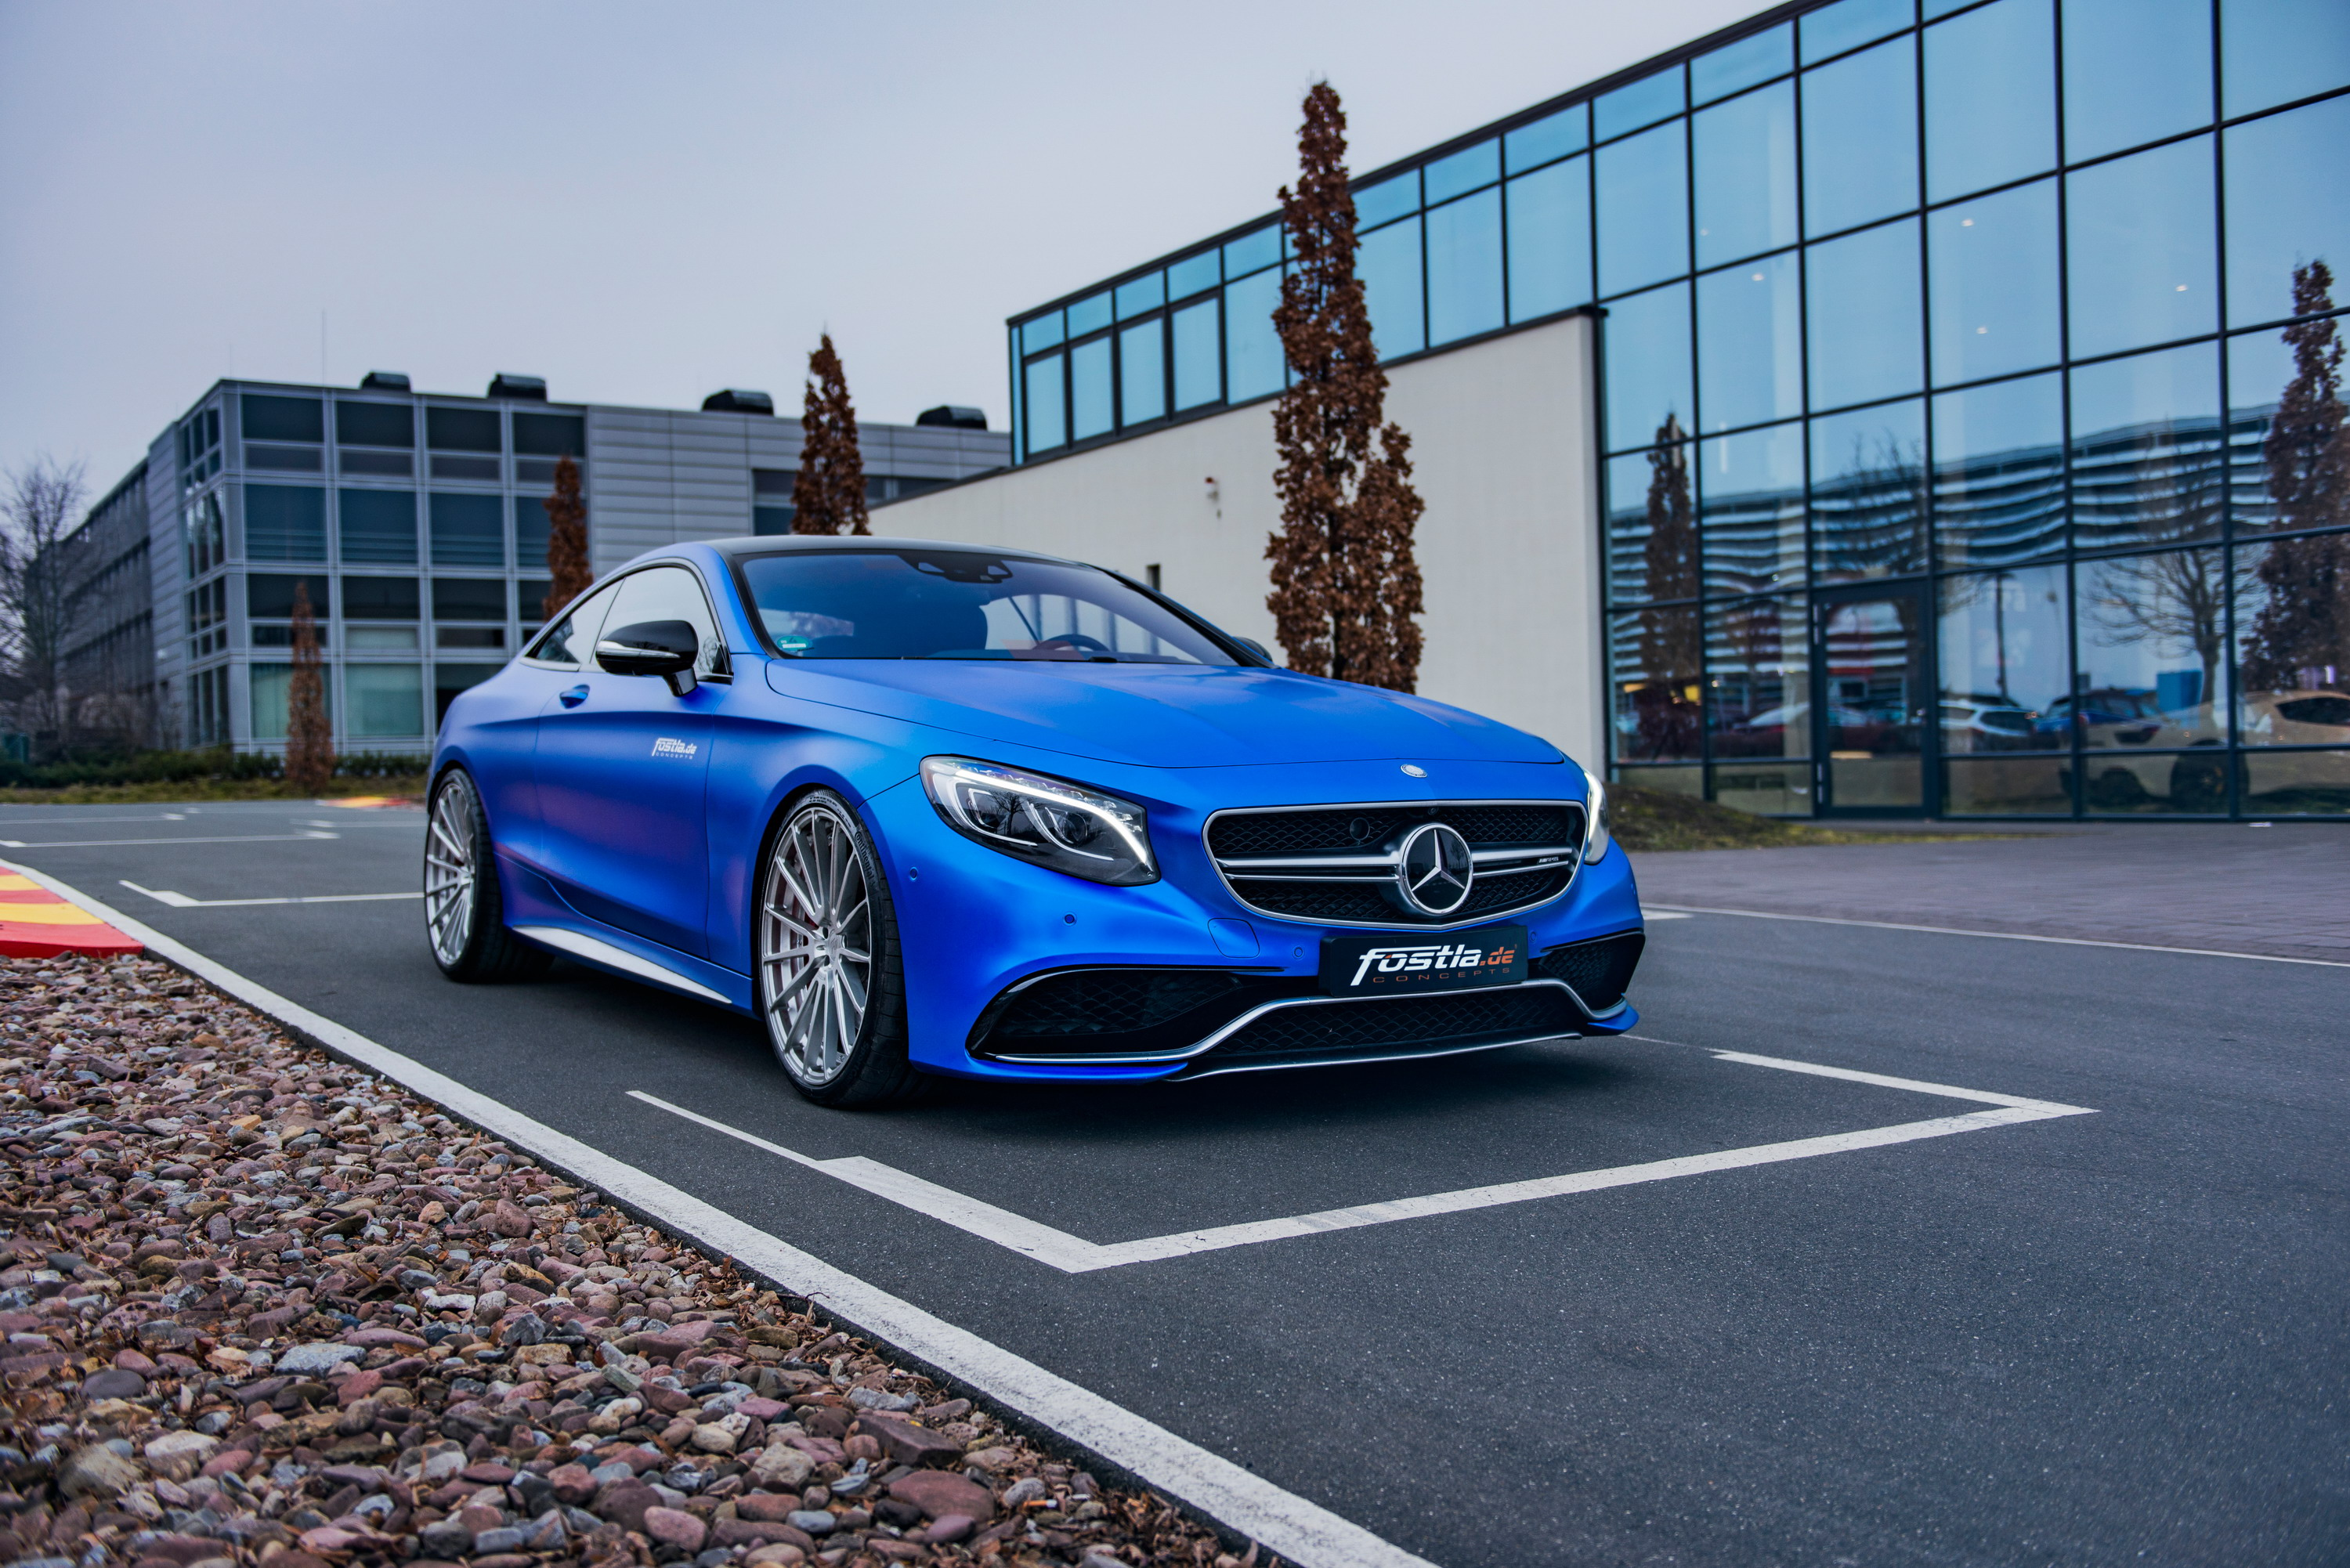 2017 Mercedes Amg S63 Coupe S By Fostla Top Speed